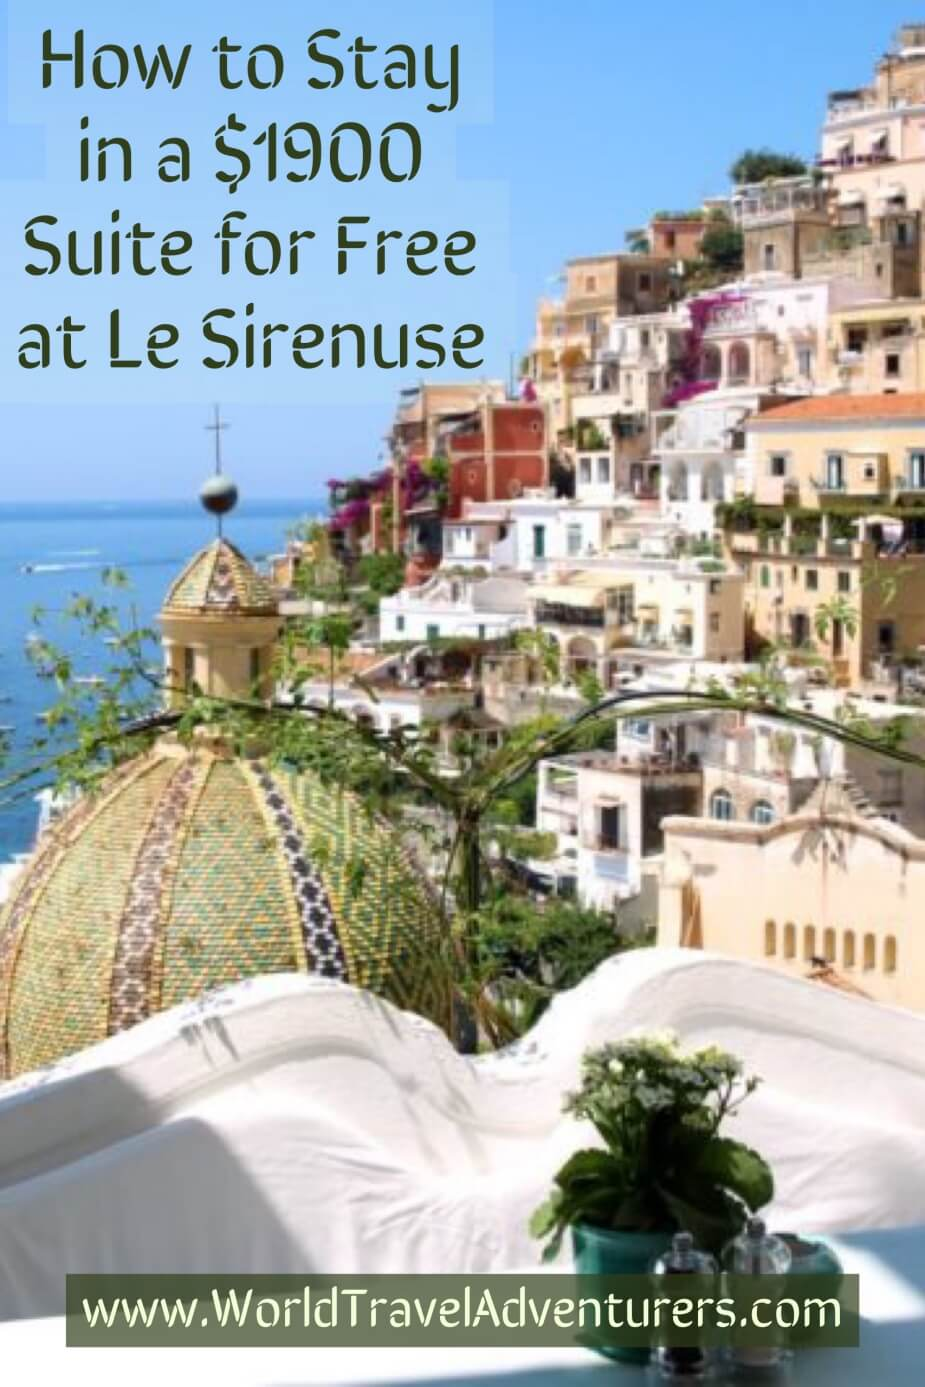 How to stay in a $1900 Suite For Free at Le Sirenuse